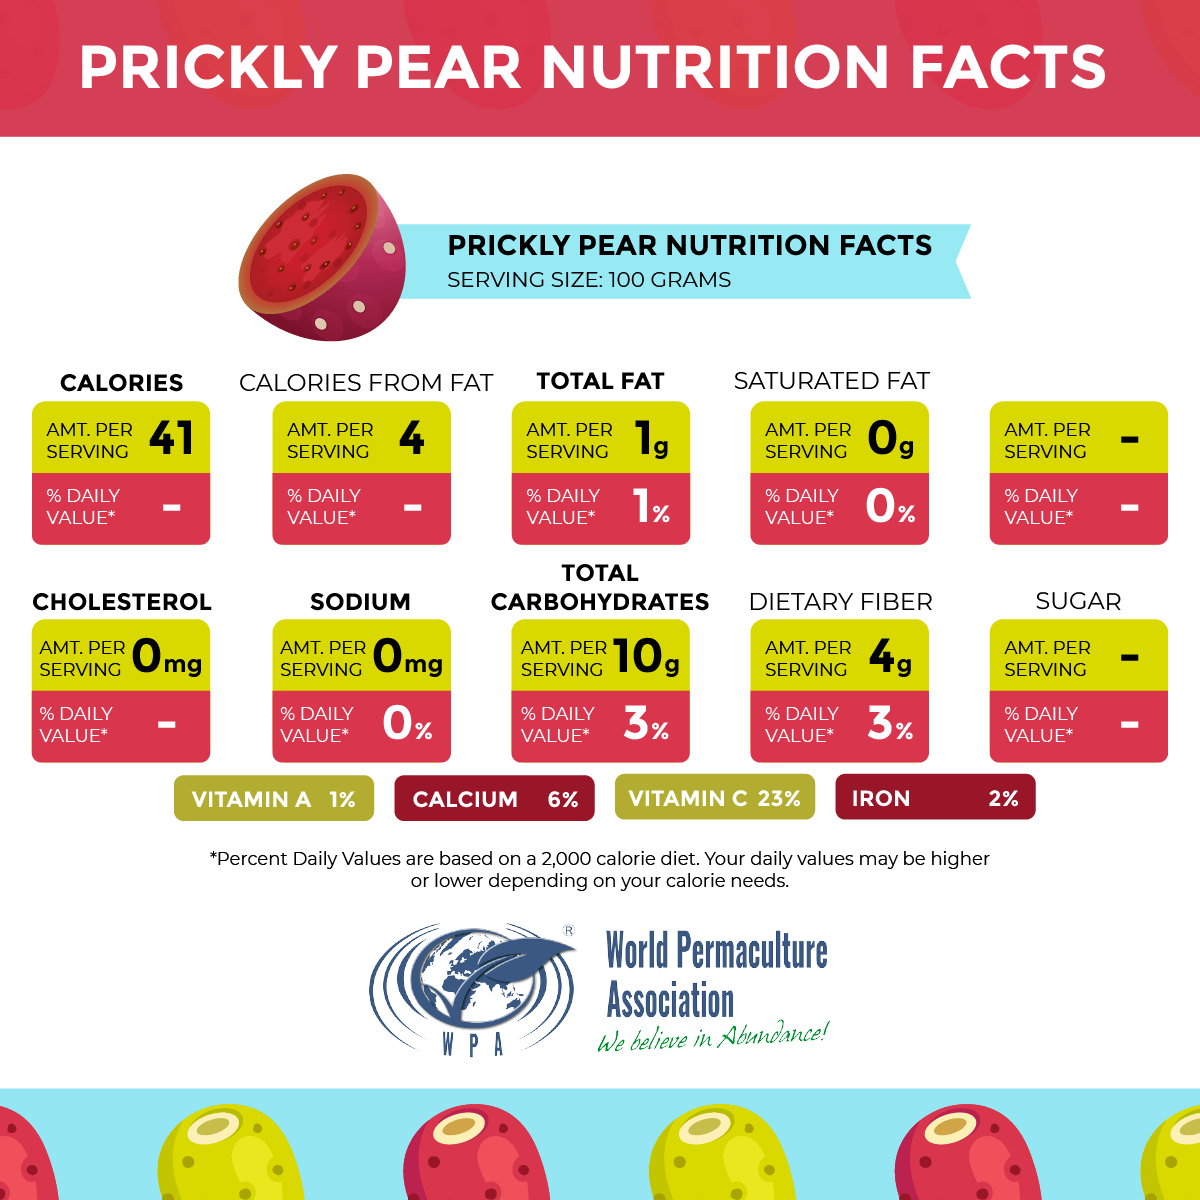 Prickly Pear Nutrition Facts